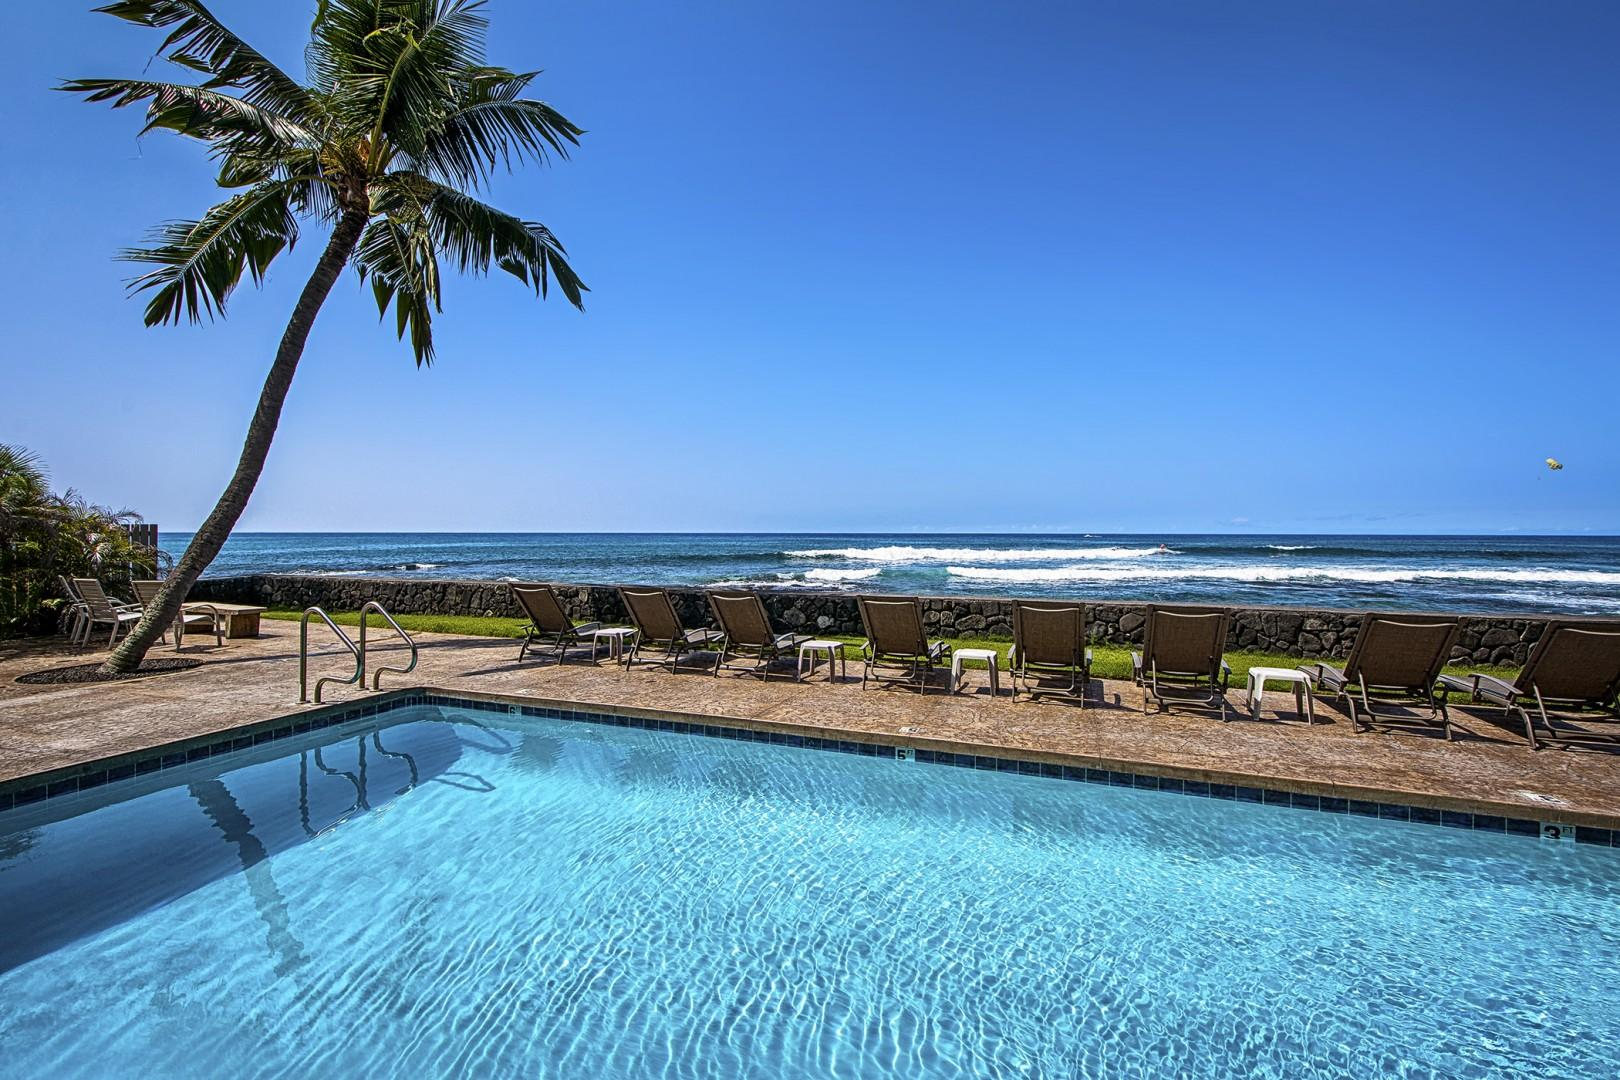 You can hear the sound of the waves from this pool.